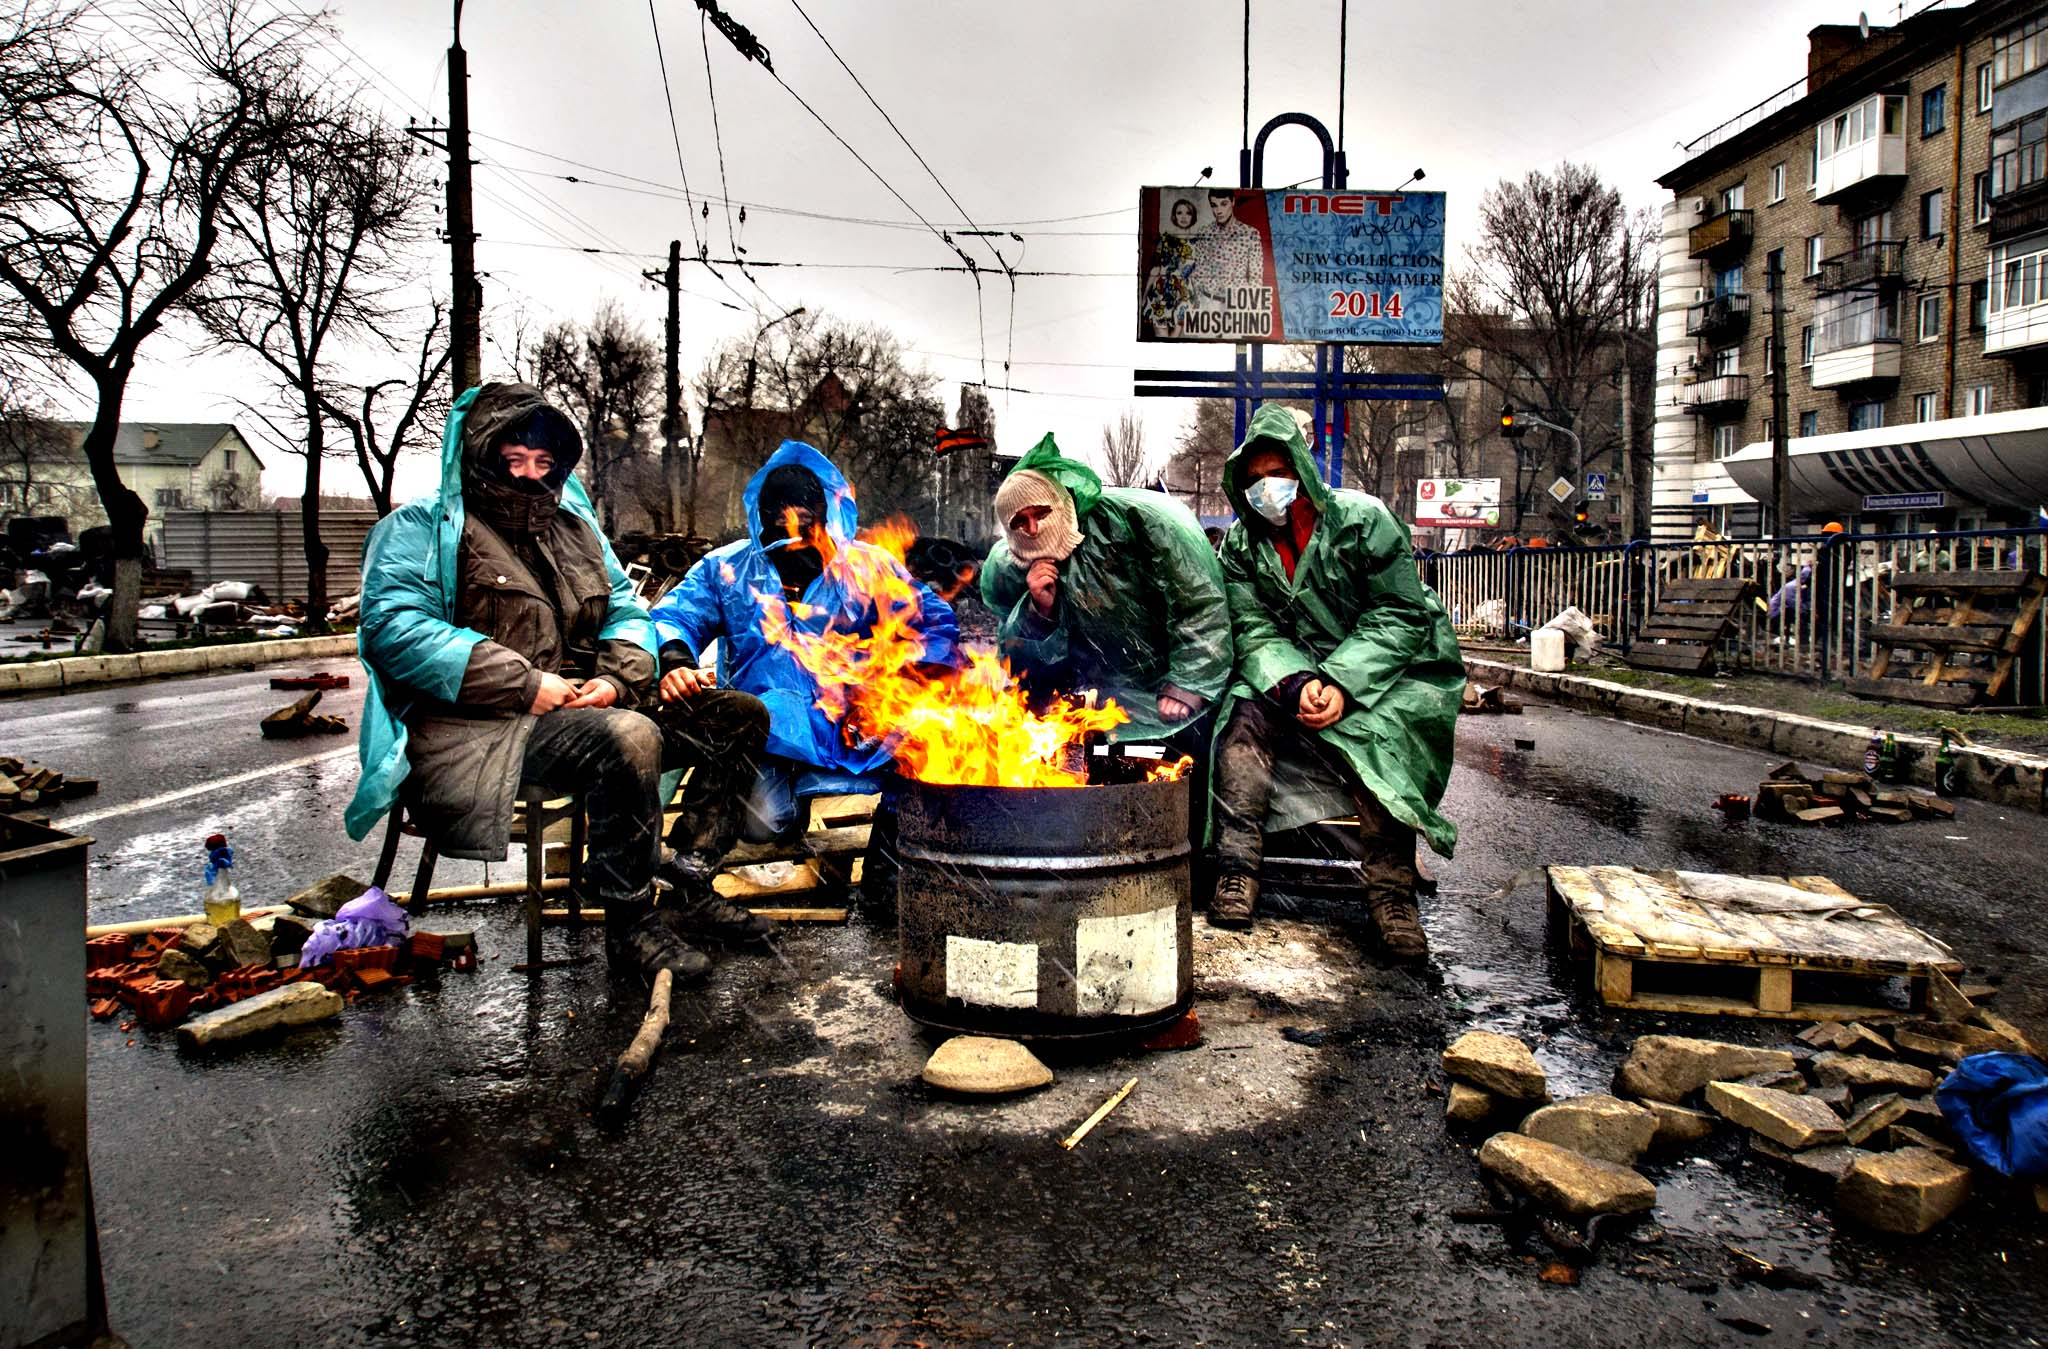 Pro-Russian activists warm themselves at a bonfire next to barricades in front of an entrance to the Ukrainian regional office of the Security Service in Luhansk, 30 kilometers (20 miles) west of the Russian border, in Ukraine, Friday, April 11, 2014. Ukraine s prime minister Arseniy Yatsenyuk on Friday told leaders in the country s restive east that he is committed to allowing regions to have more powers. Yatsenyuk told the meeting, which did not include representatives of the separatists, that more authority should be delegated to regional authorities.